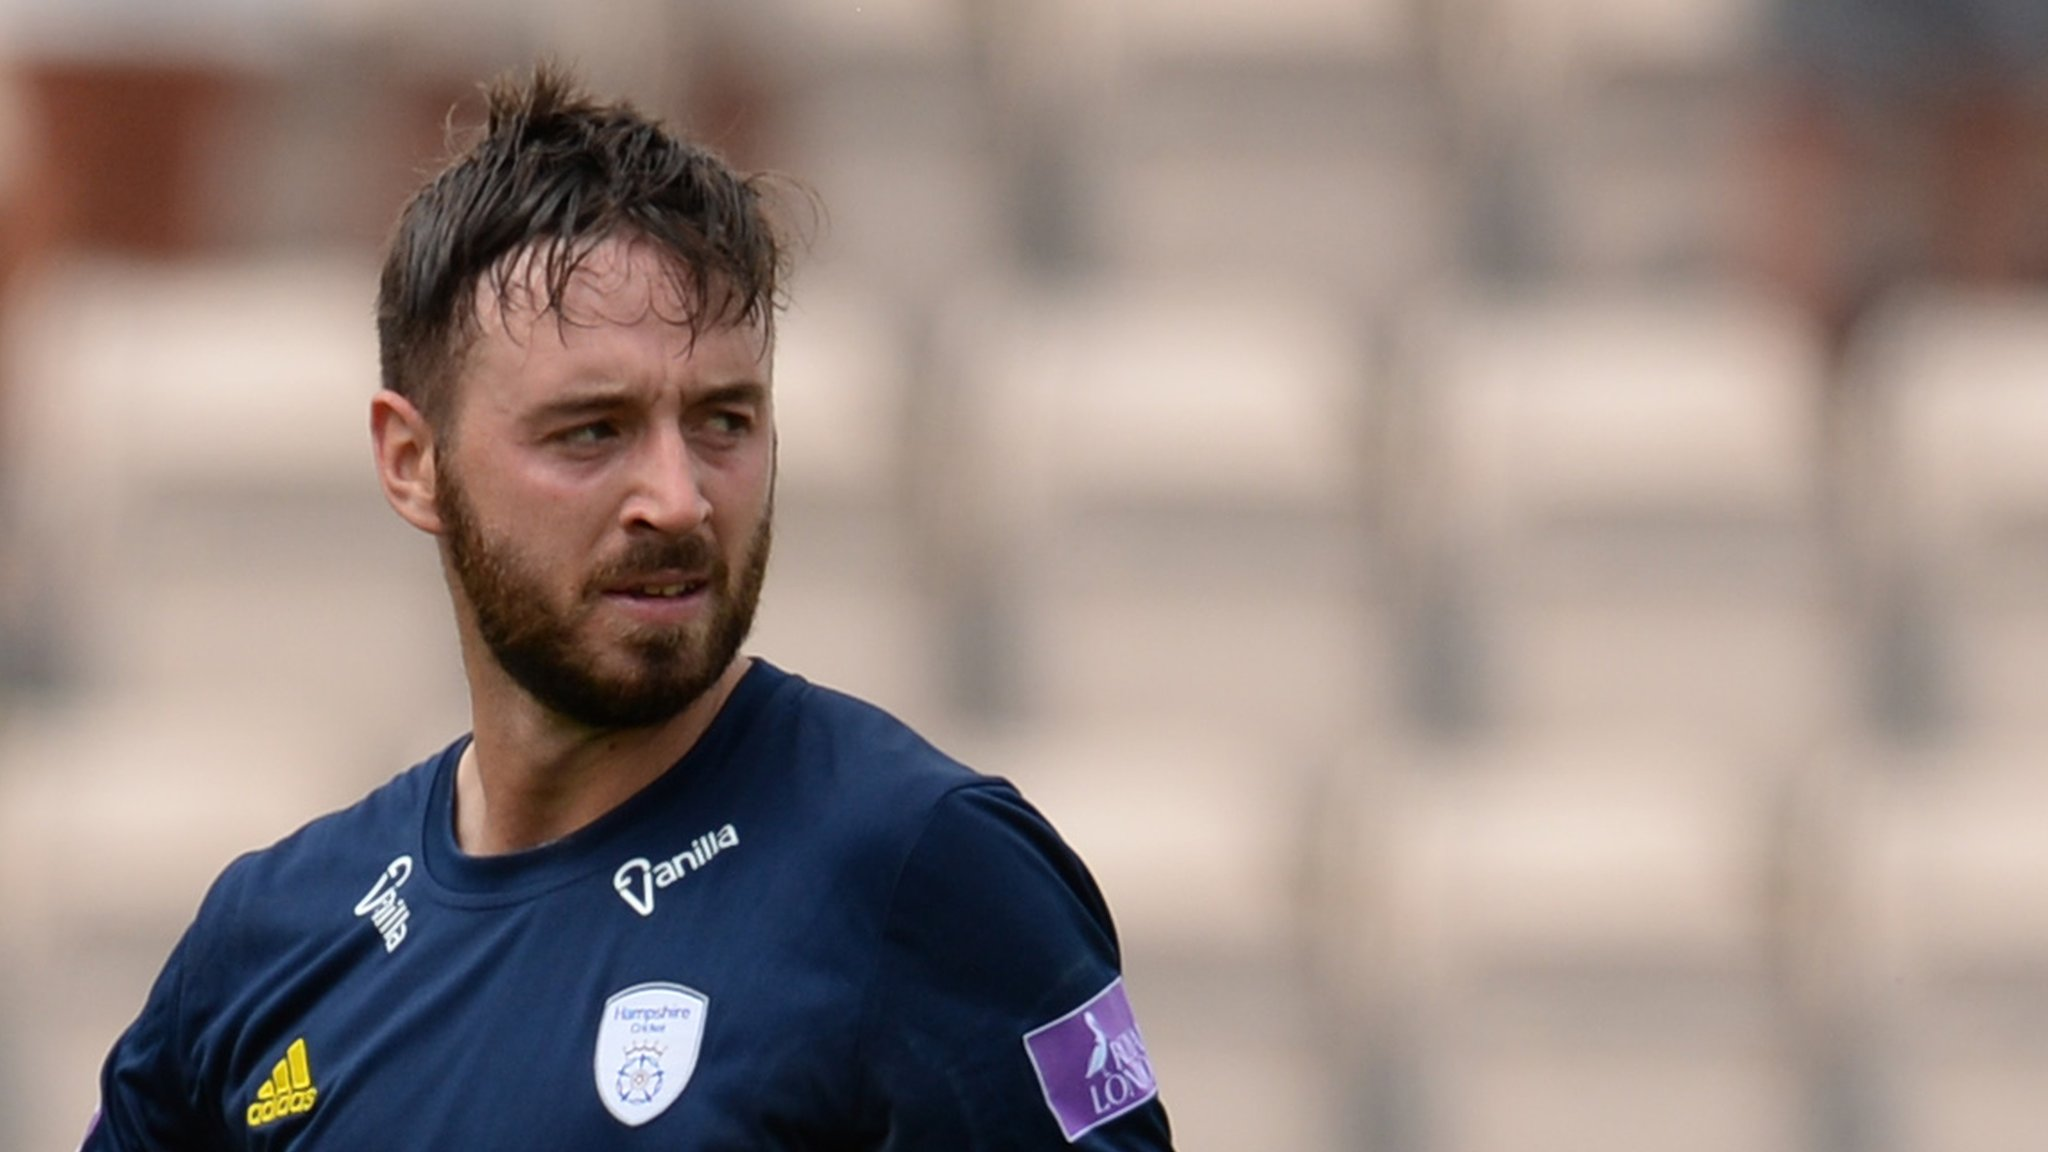 James Vince: Hampshire captain signs new four-year deal